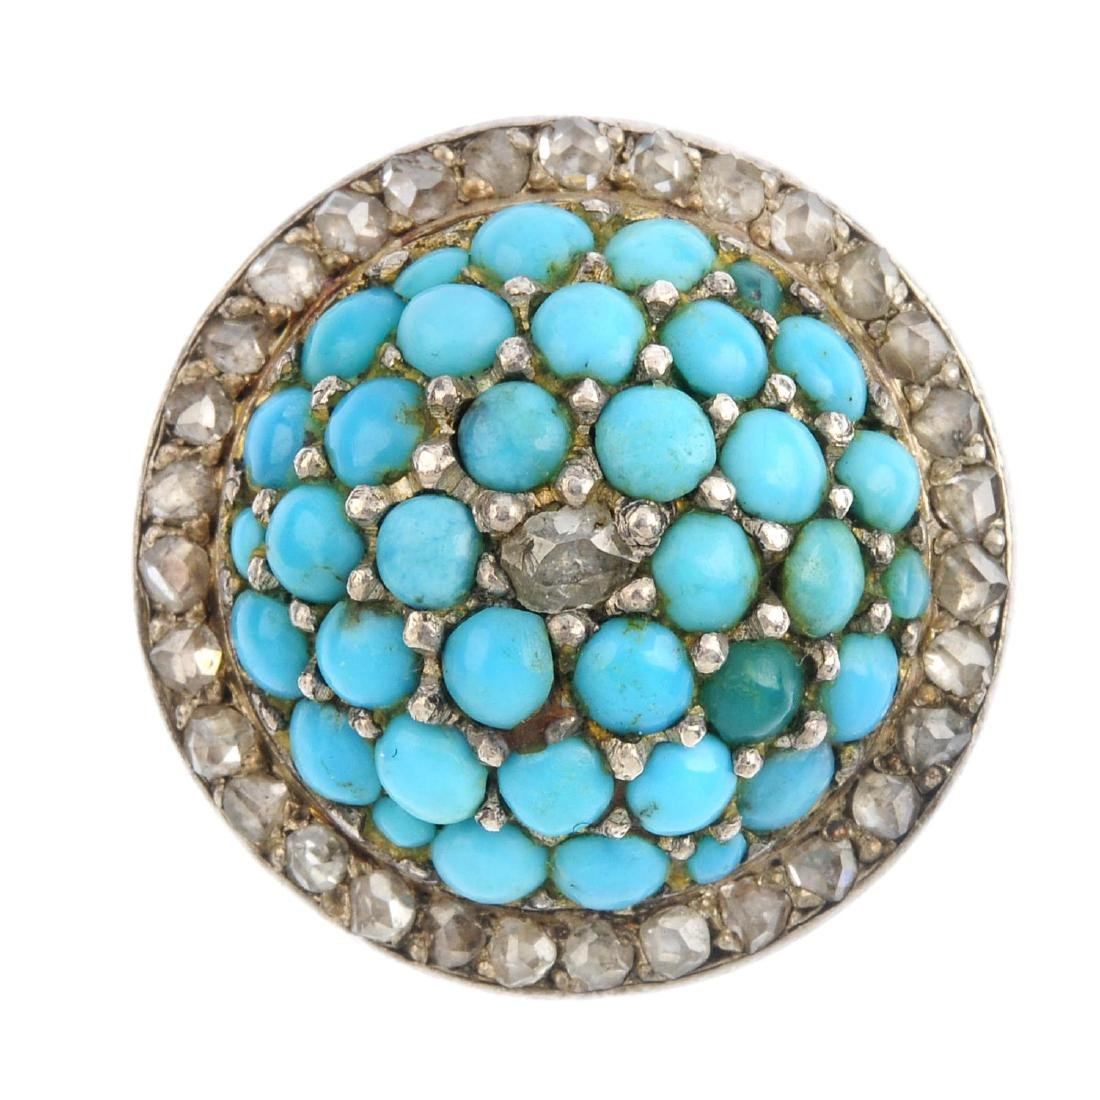 An early 20th century turquoise and diamond dress ring.